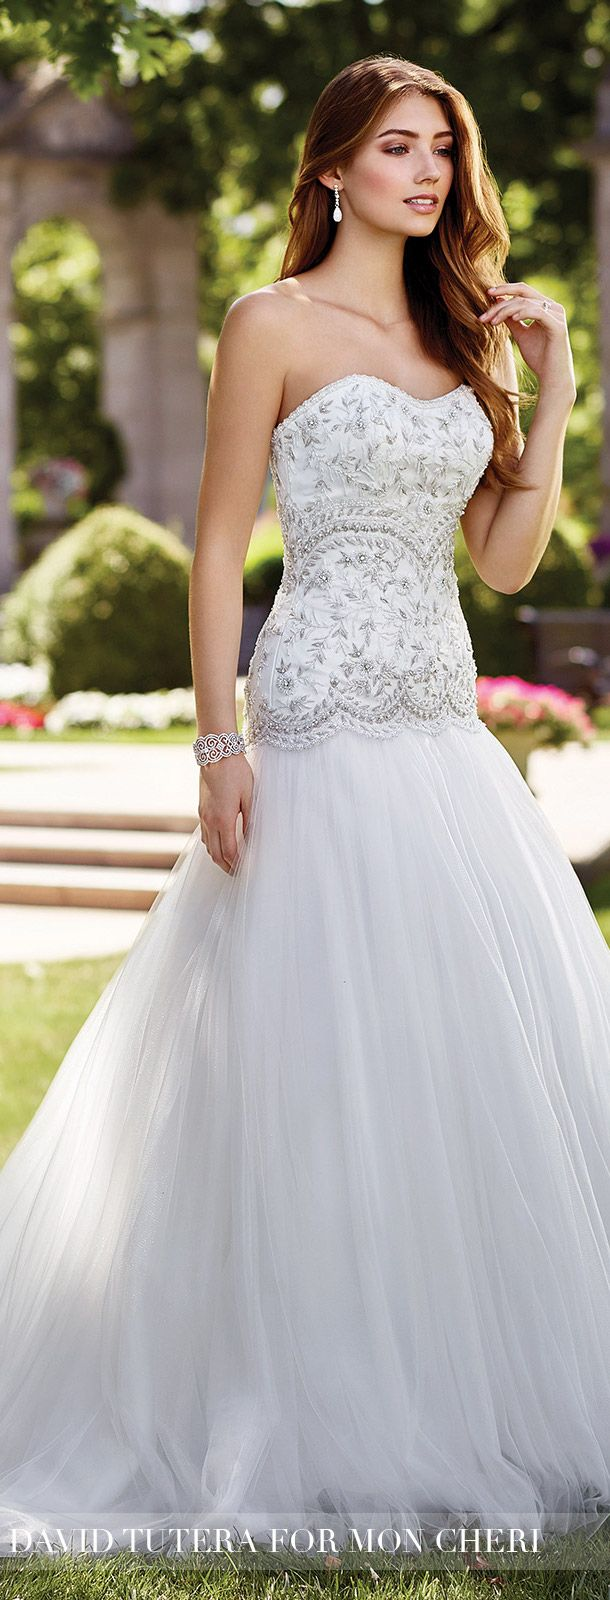 Best 25+ Nice wedding dresses ideas only on Pinterest | Fashion ...